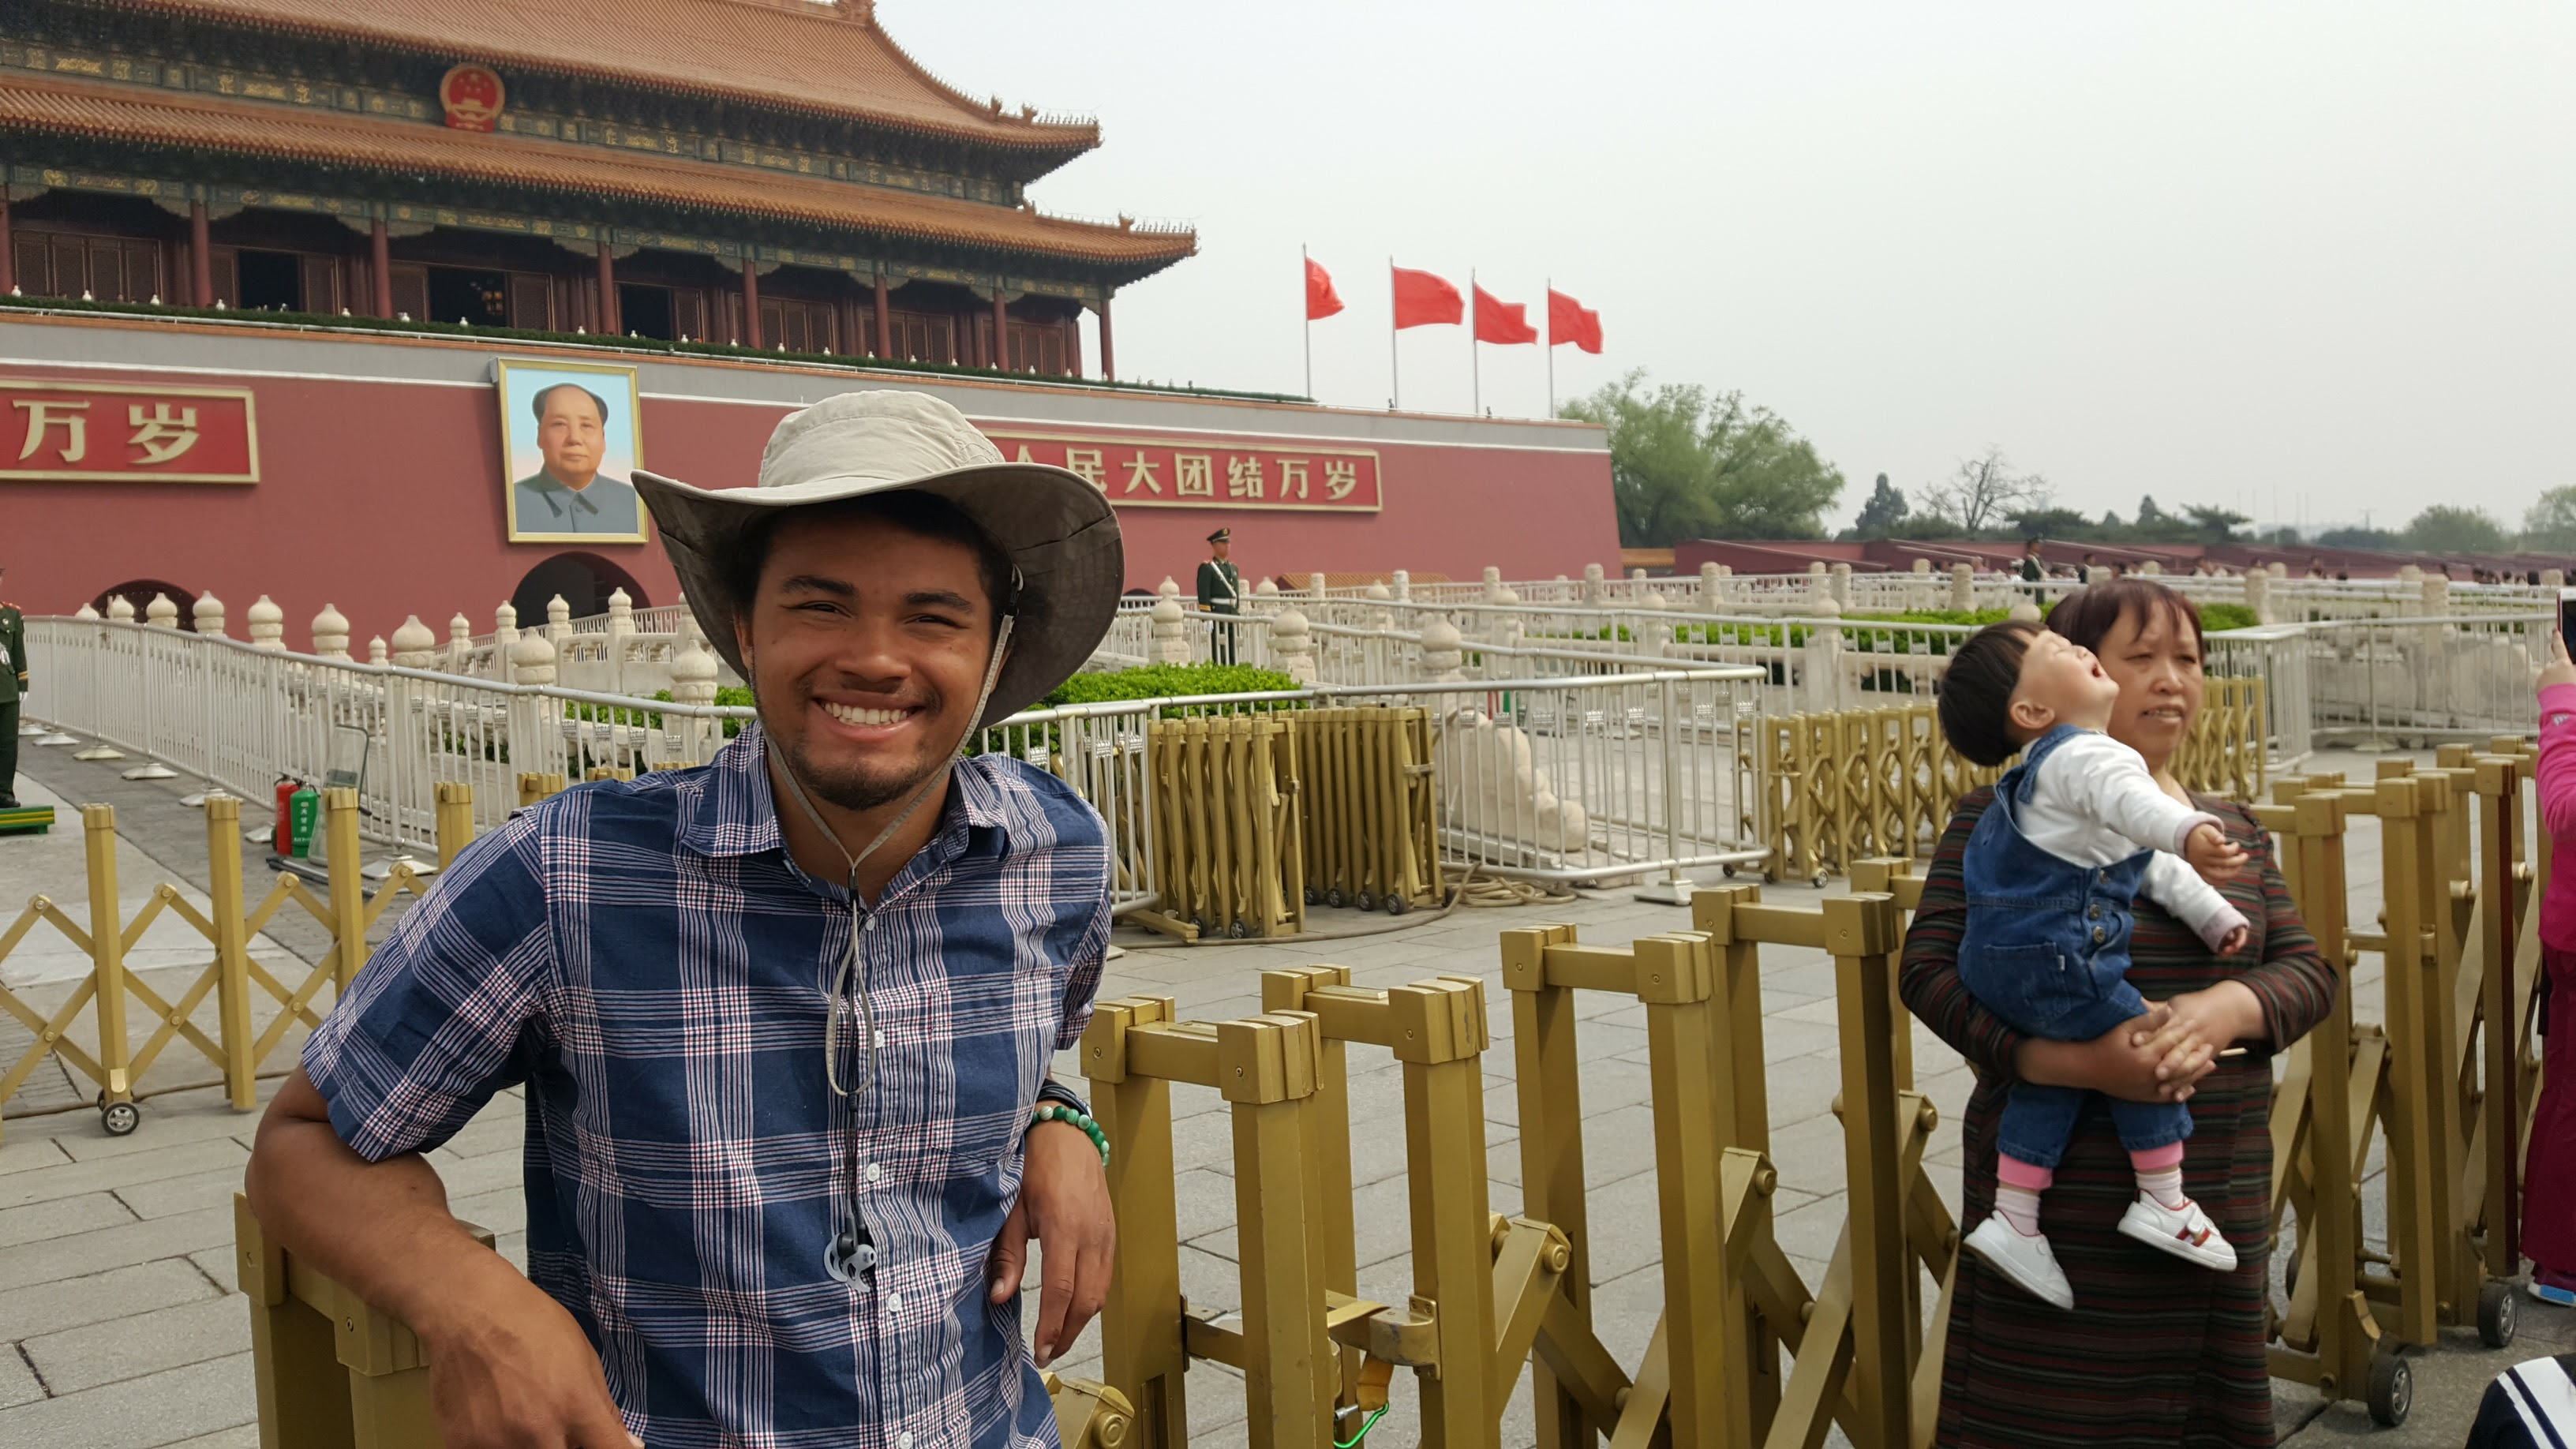 During a semester break, SJTU program participant Jerome Alexander Marshall visited the Tiananmen Square.